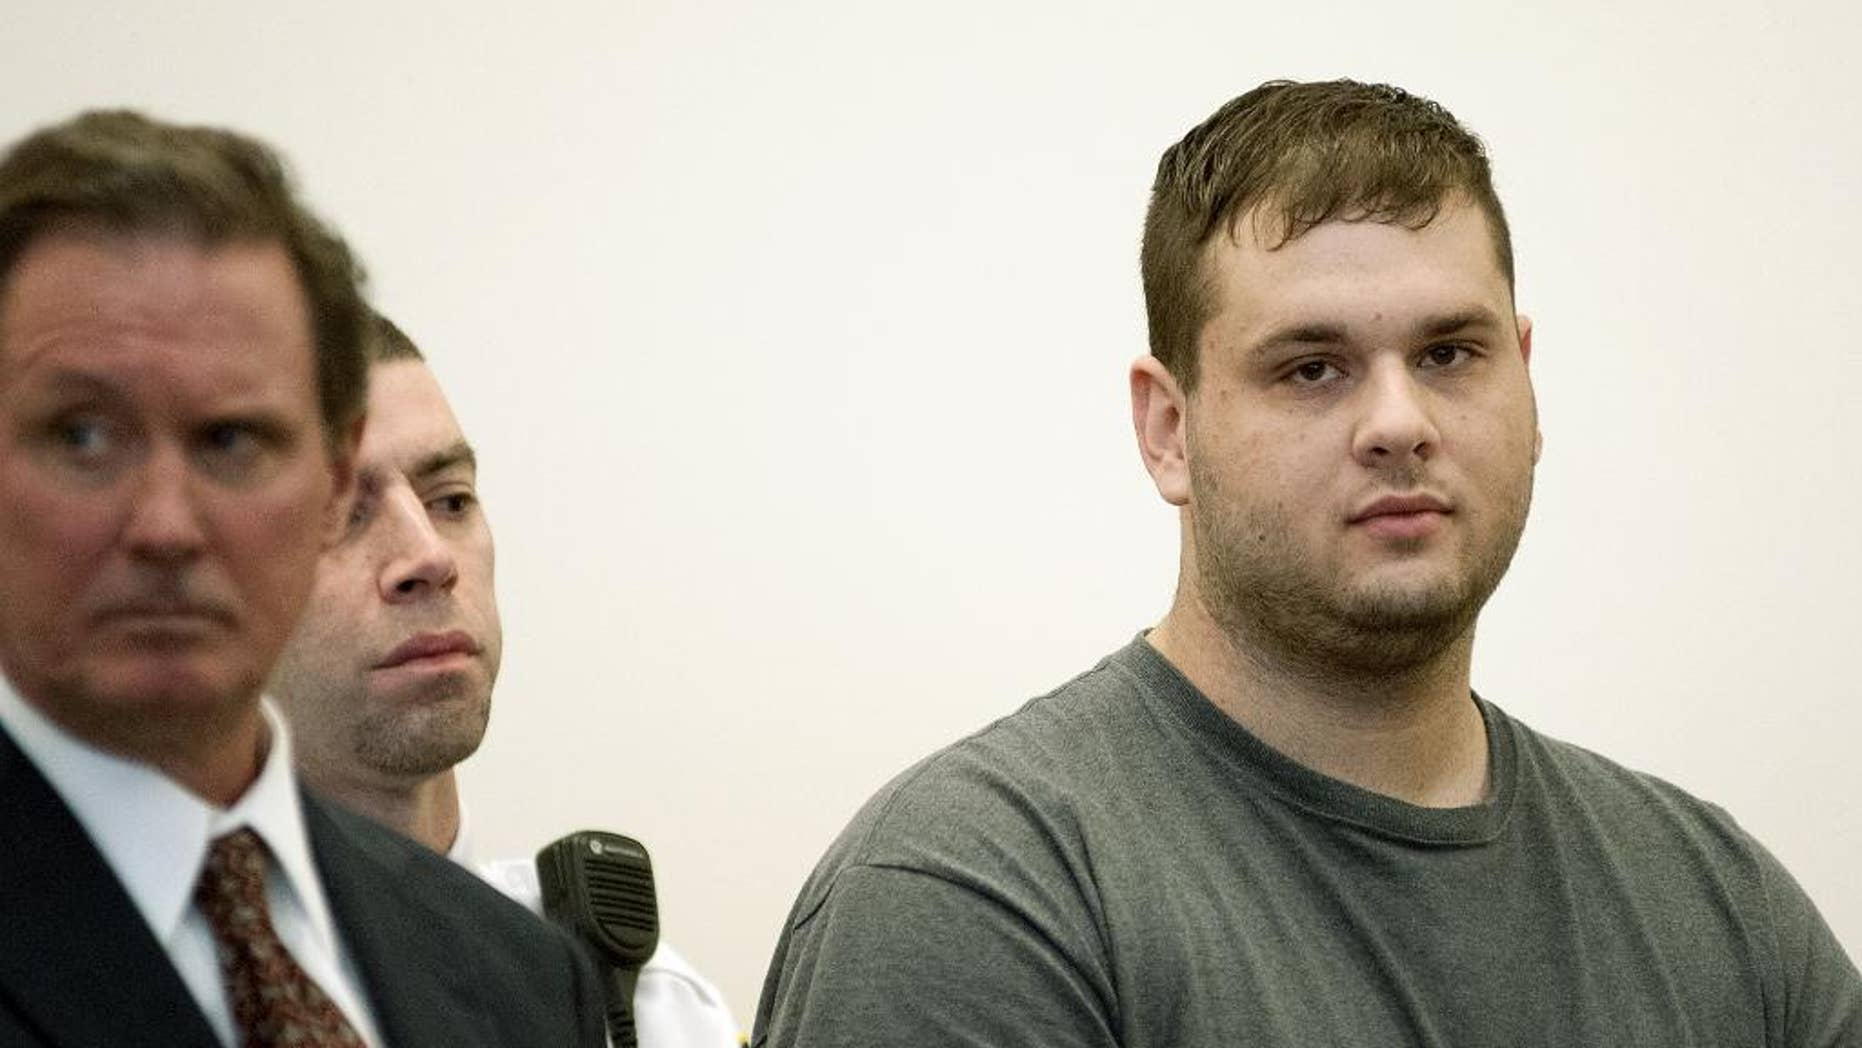 Gregory Lewis, right, is arraigned in Worcester Superior Court in Worcester, Mass. Monday Nov.3, 2014. Attorney Michael Hussey and a court officer stand beside Lewis. Lewis is suspected of raping a 13-year-old girl, then going on a cross-country crime spree after cutting off his court-ordered monitoring device, He pleaded not guiltyduring his arraignment and was ordered held without bail. (AP Photo/Worcester Telegram & Gazette, Rick Cinclair, Pool)